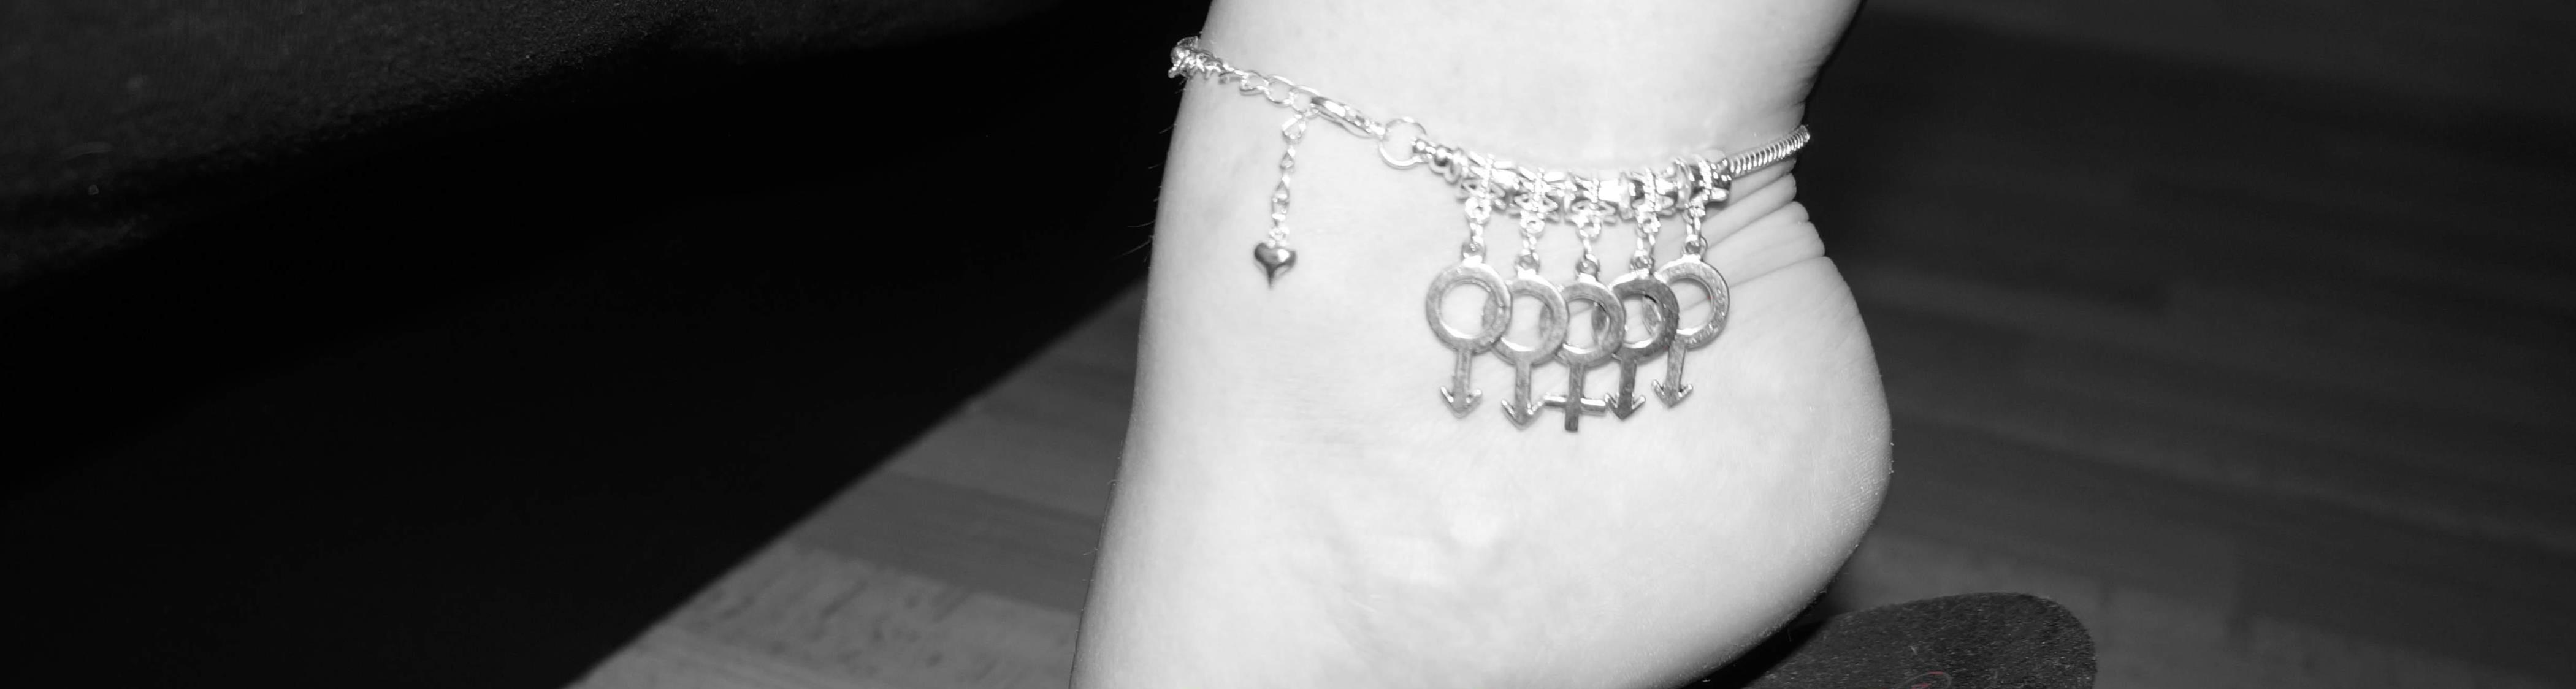 Hotwife Gangbang Swinger Anklet - Customer Image from www.sexyjewels.co.uk